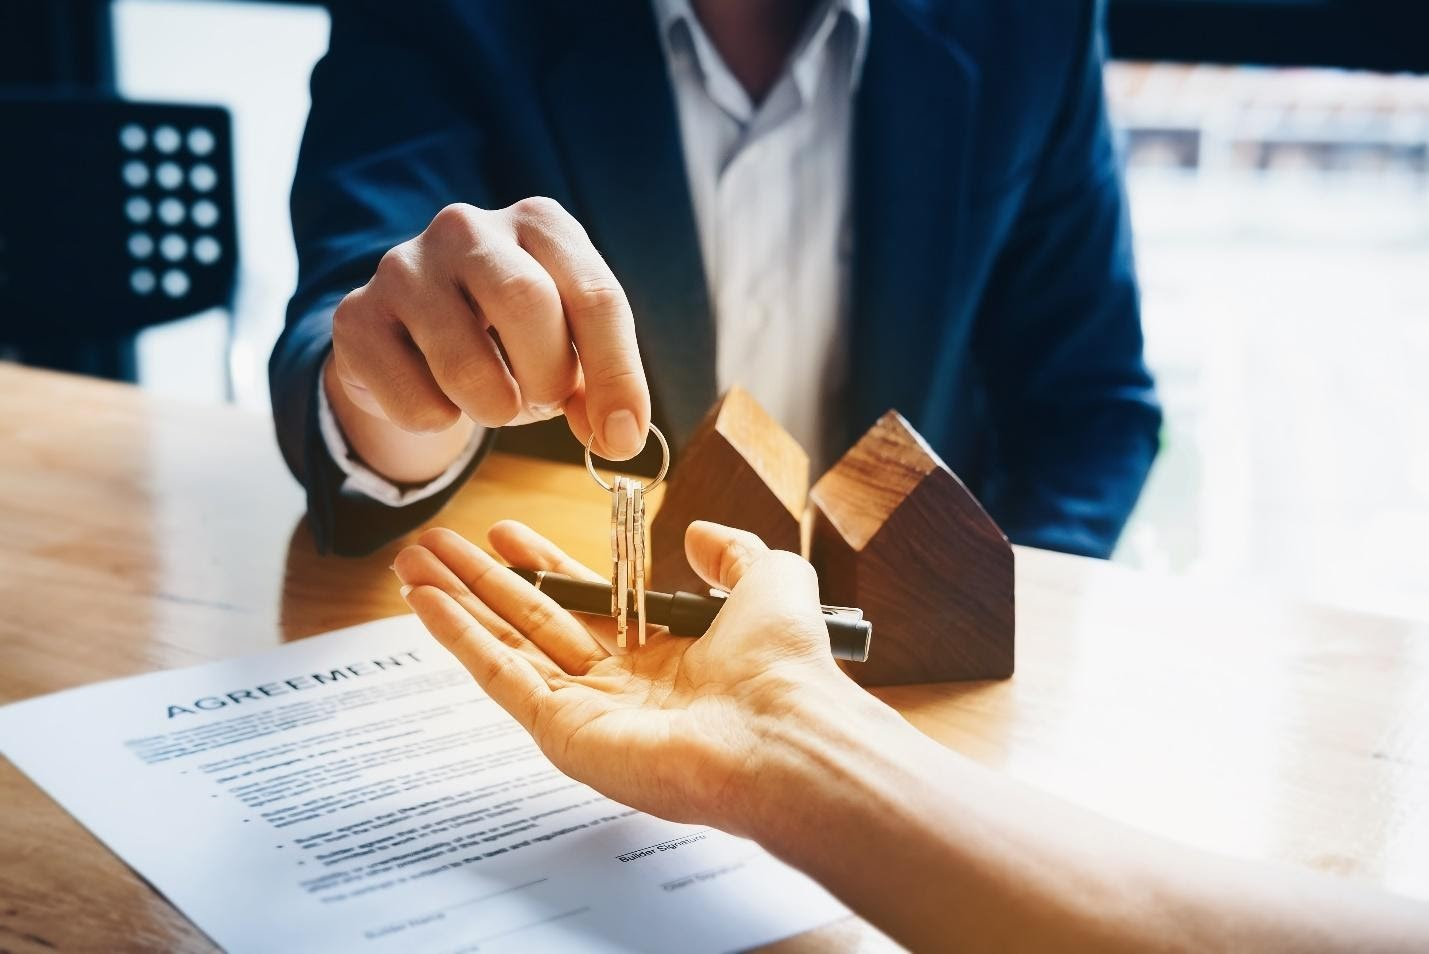 Broward County short sale lawyer services